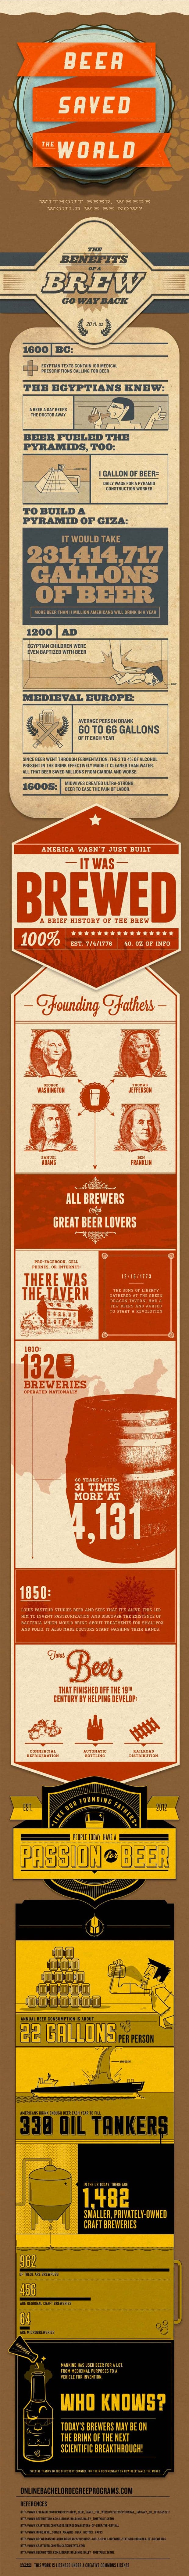 Beer-Saved-The-Wrold-Infographic